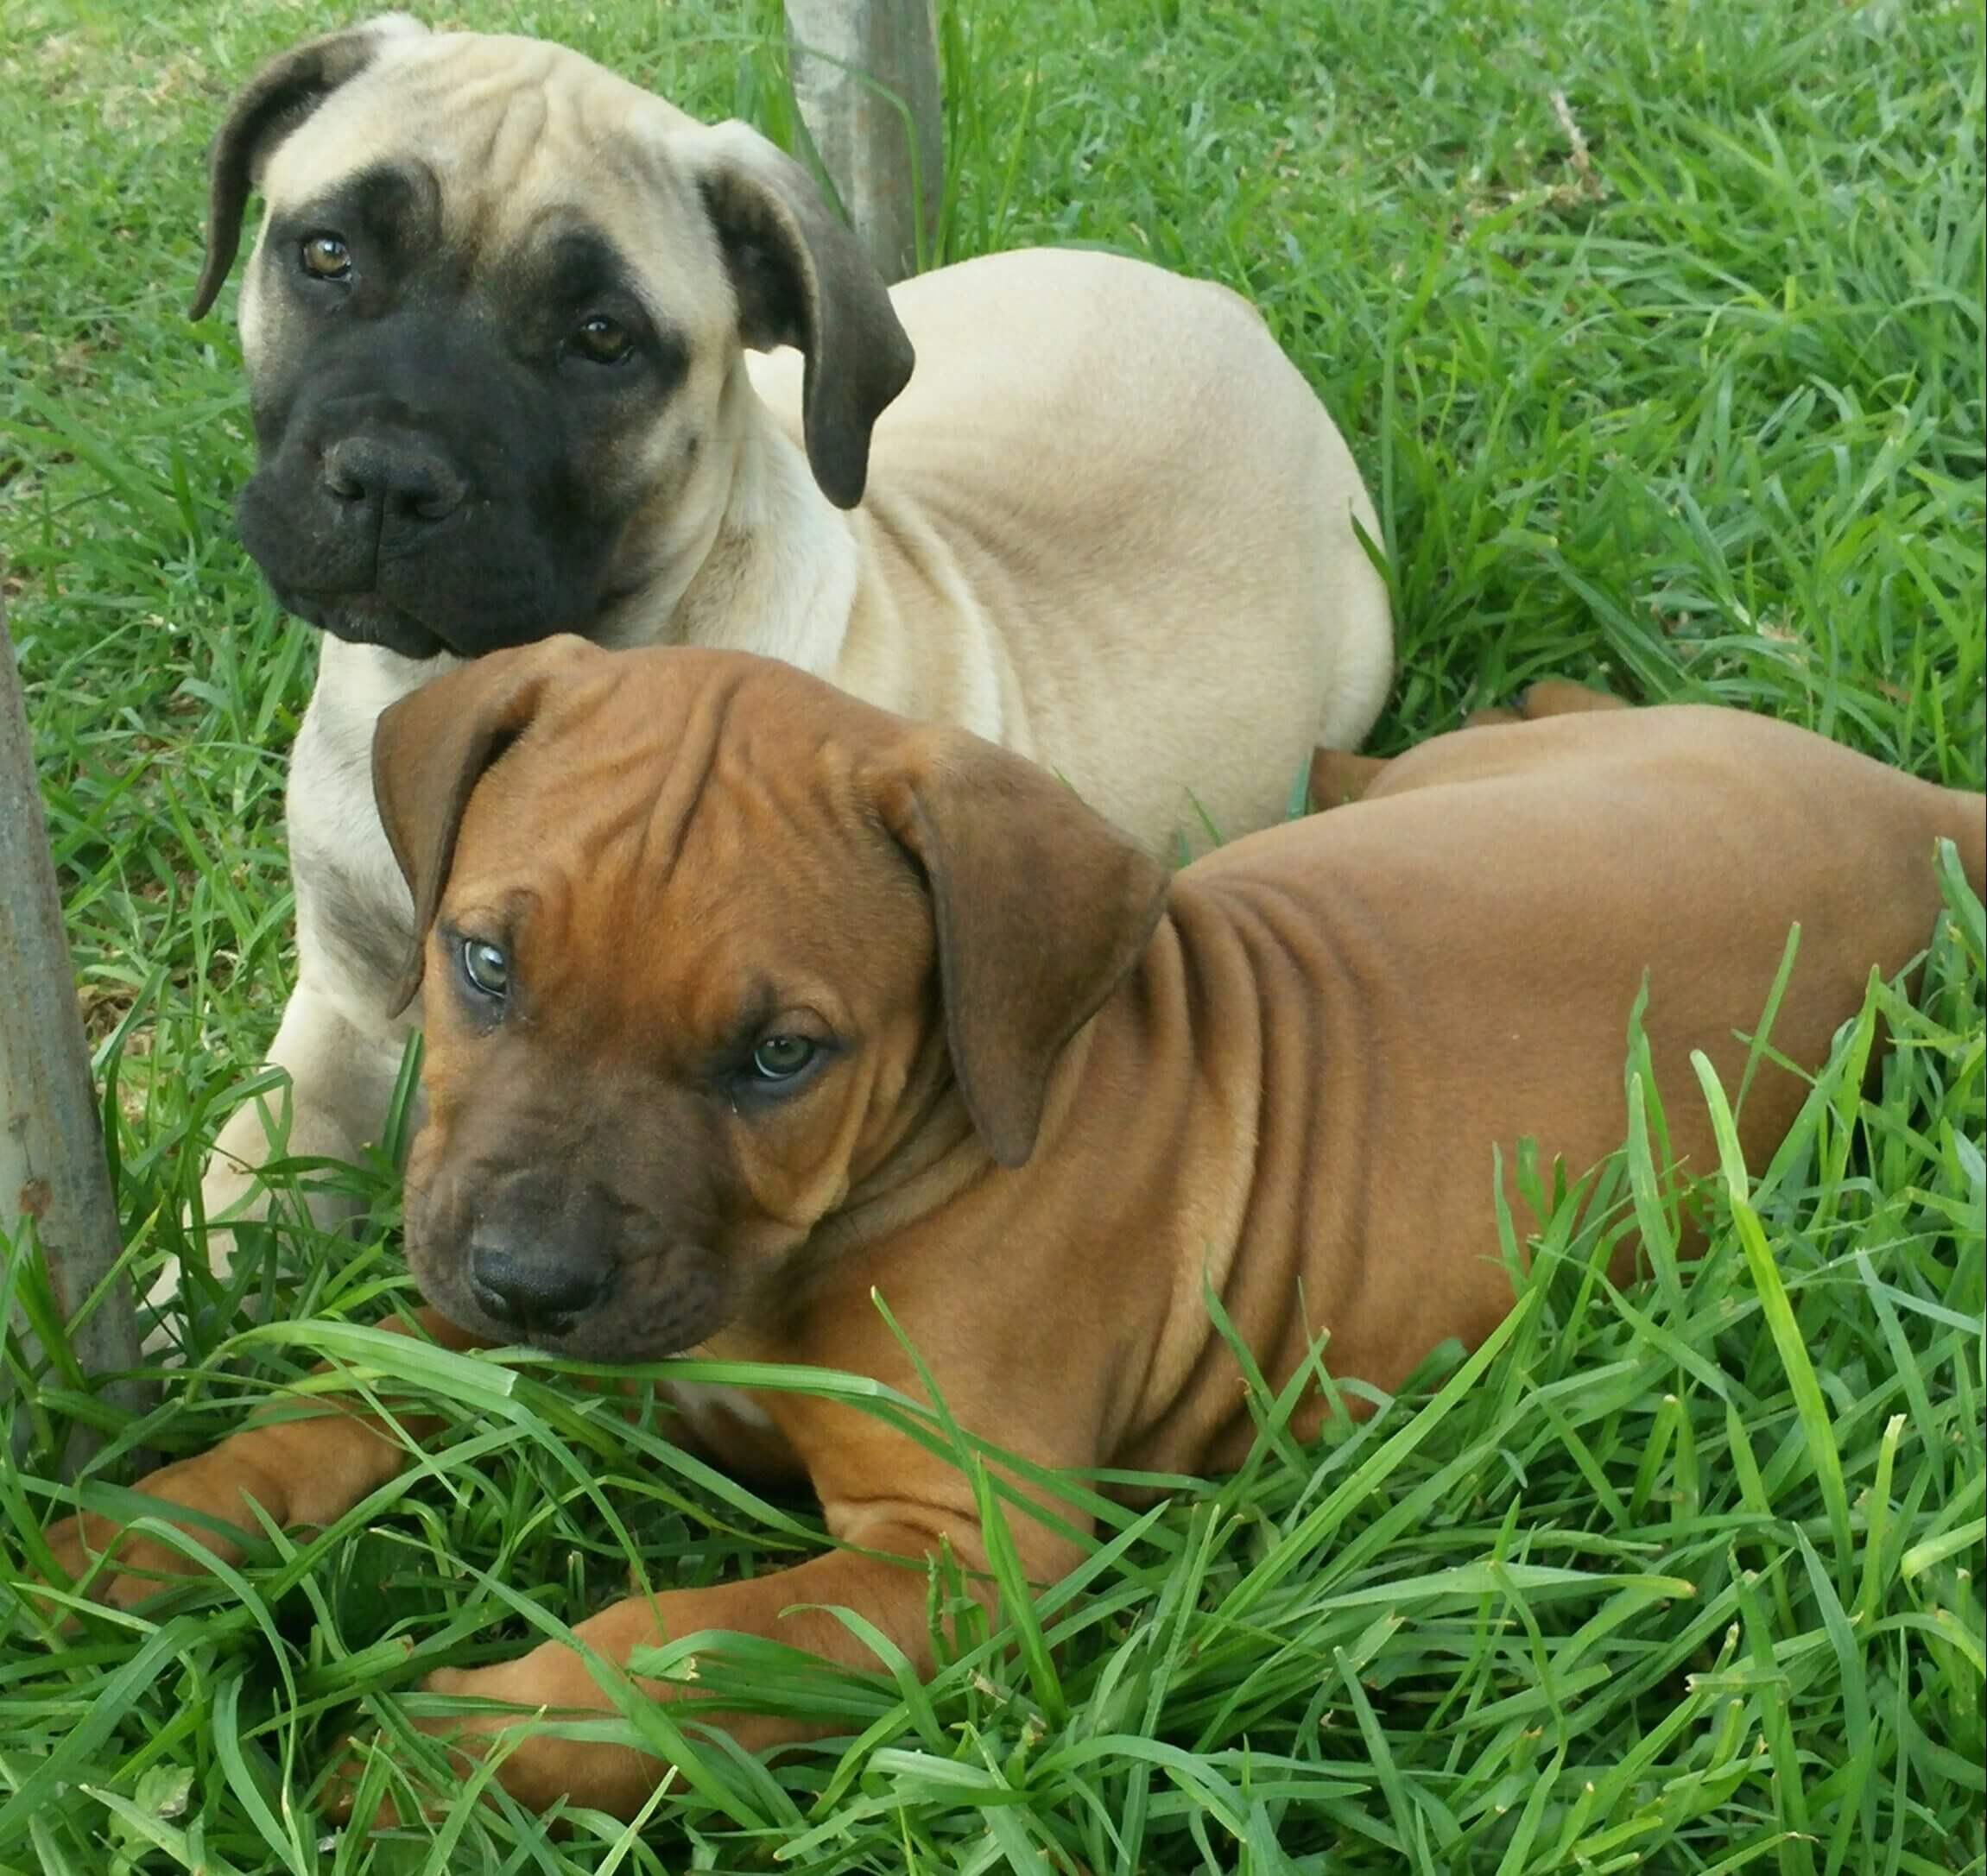 Boerboel Puppies for Sale in Other by Tania Du Plessis